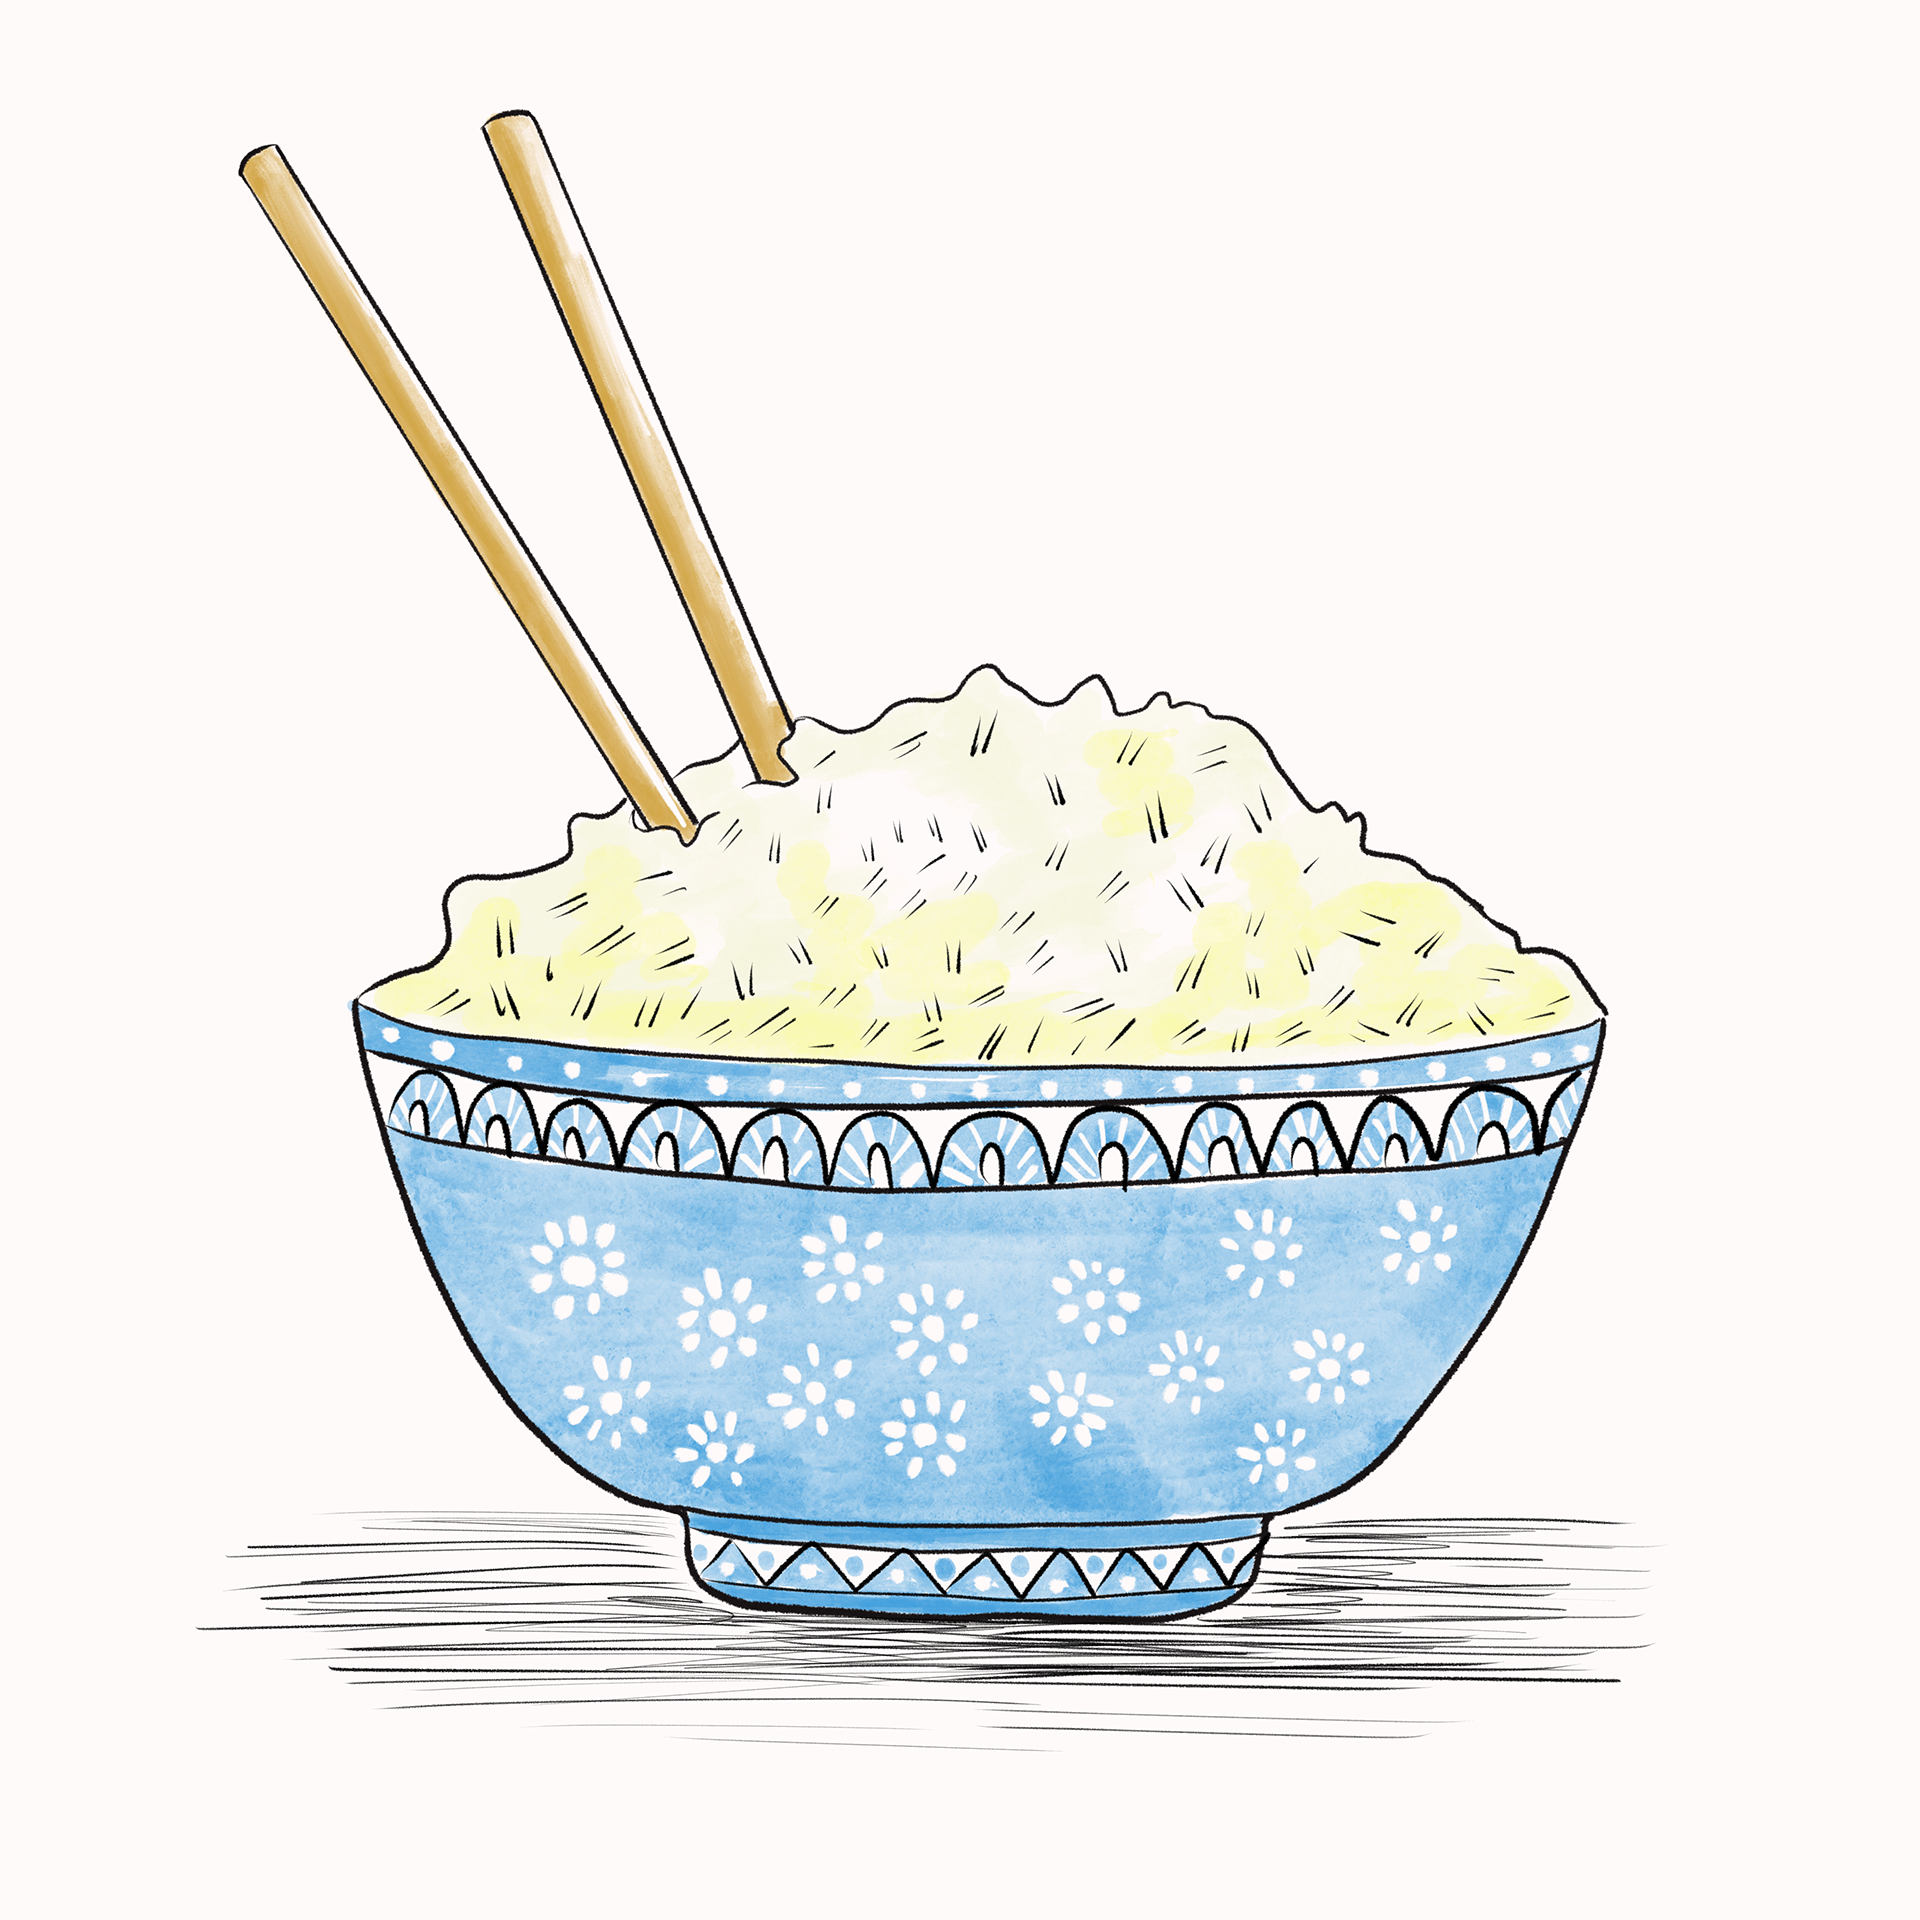 Rice In A Blue Bowl Rice Bowls Bowl Food Illustrations